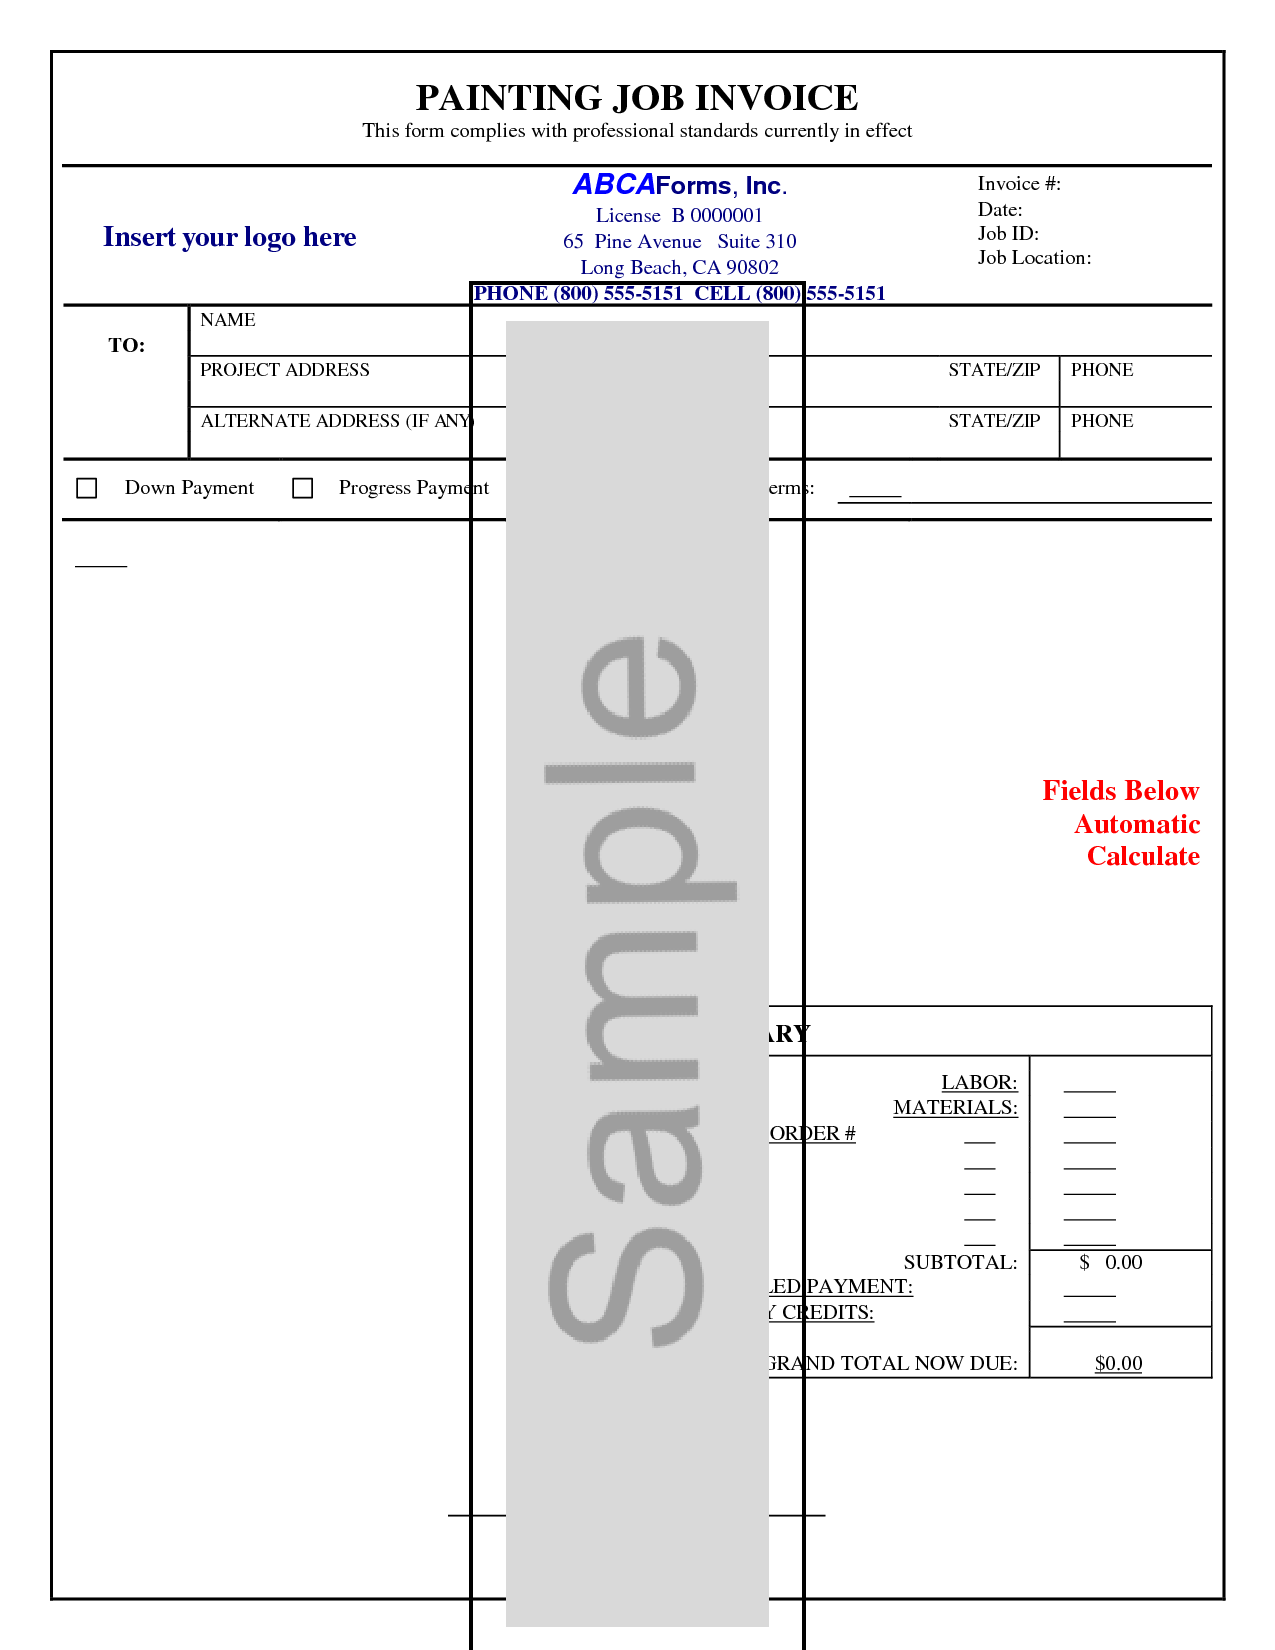 Painting Invoice Template and 10 Best Images Of Painters Invoice forms Invoice Templates